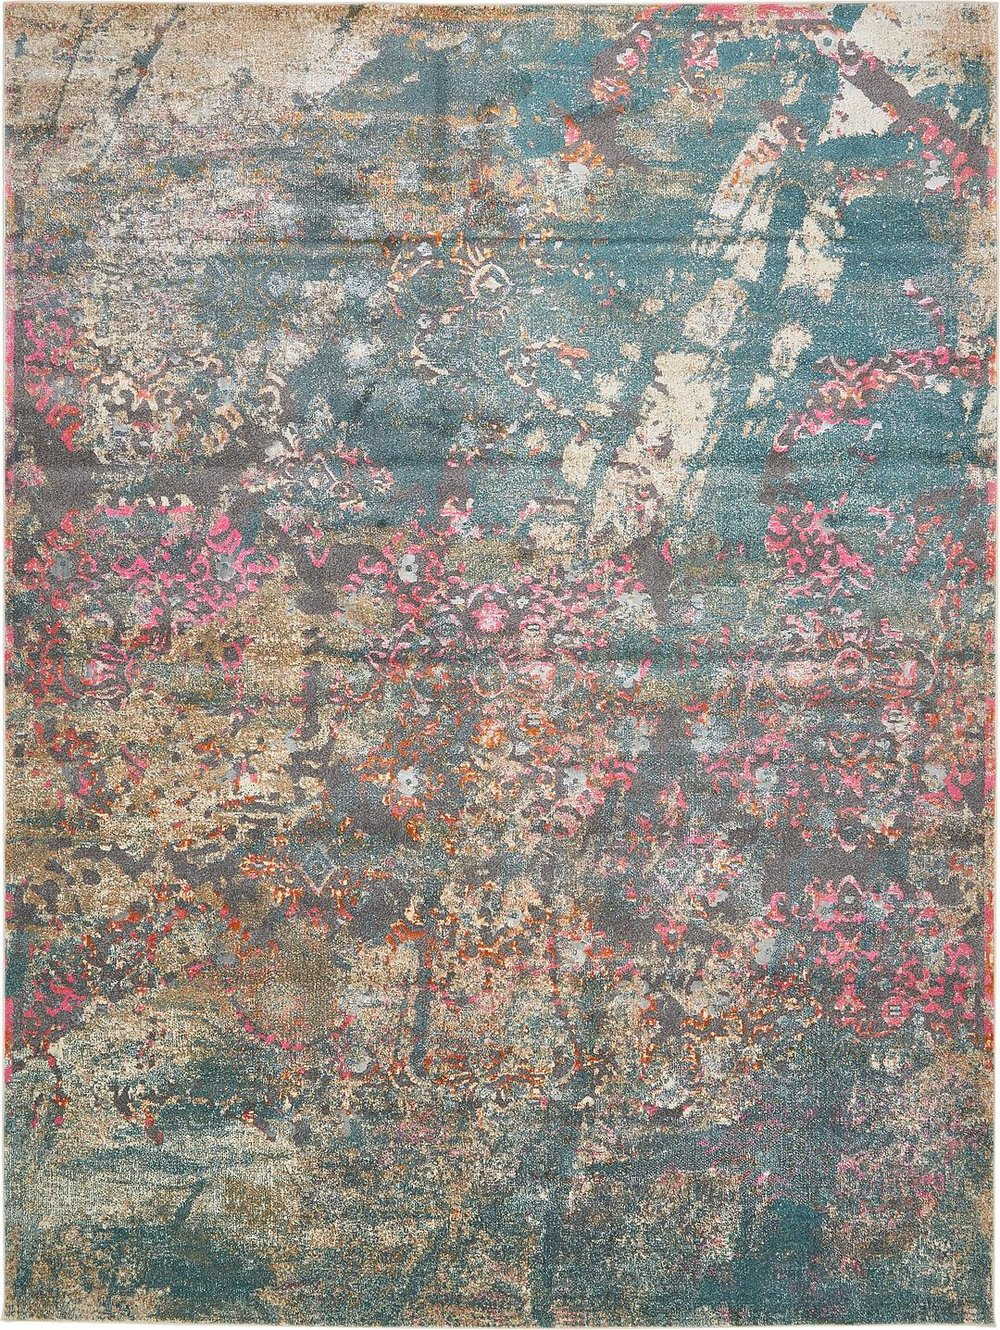 Design Board Chesterfield Cenral Rug.jpg